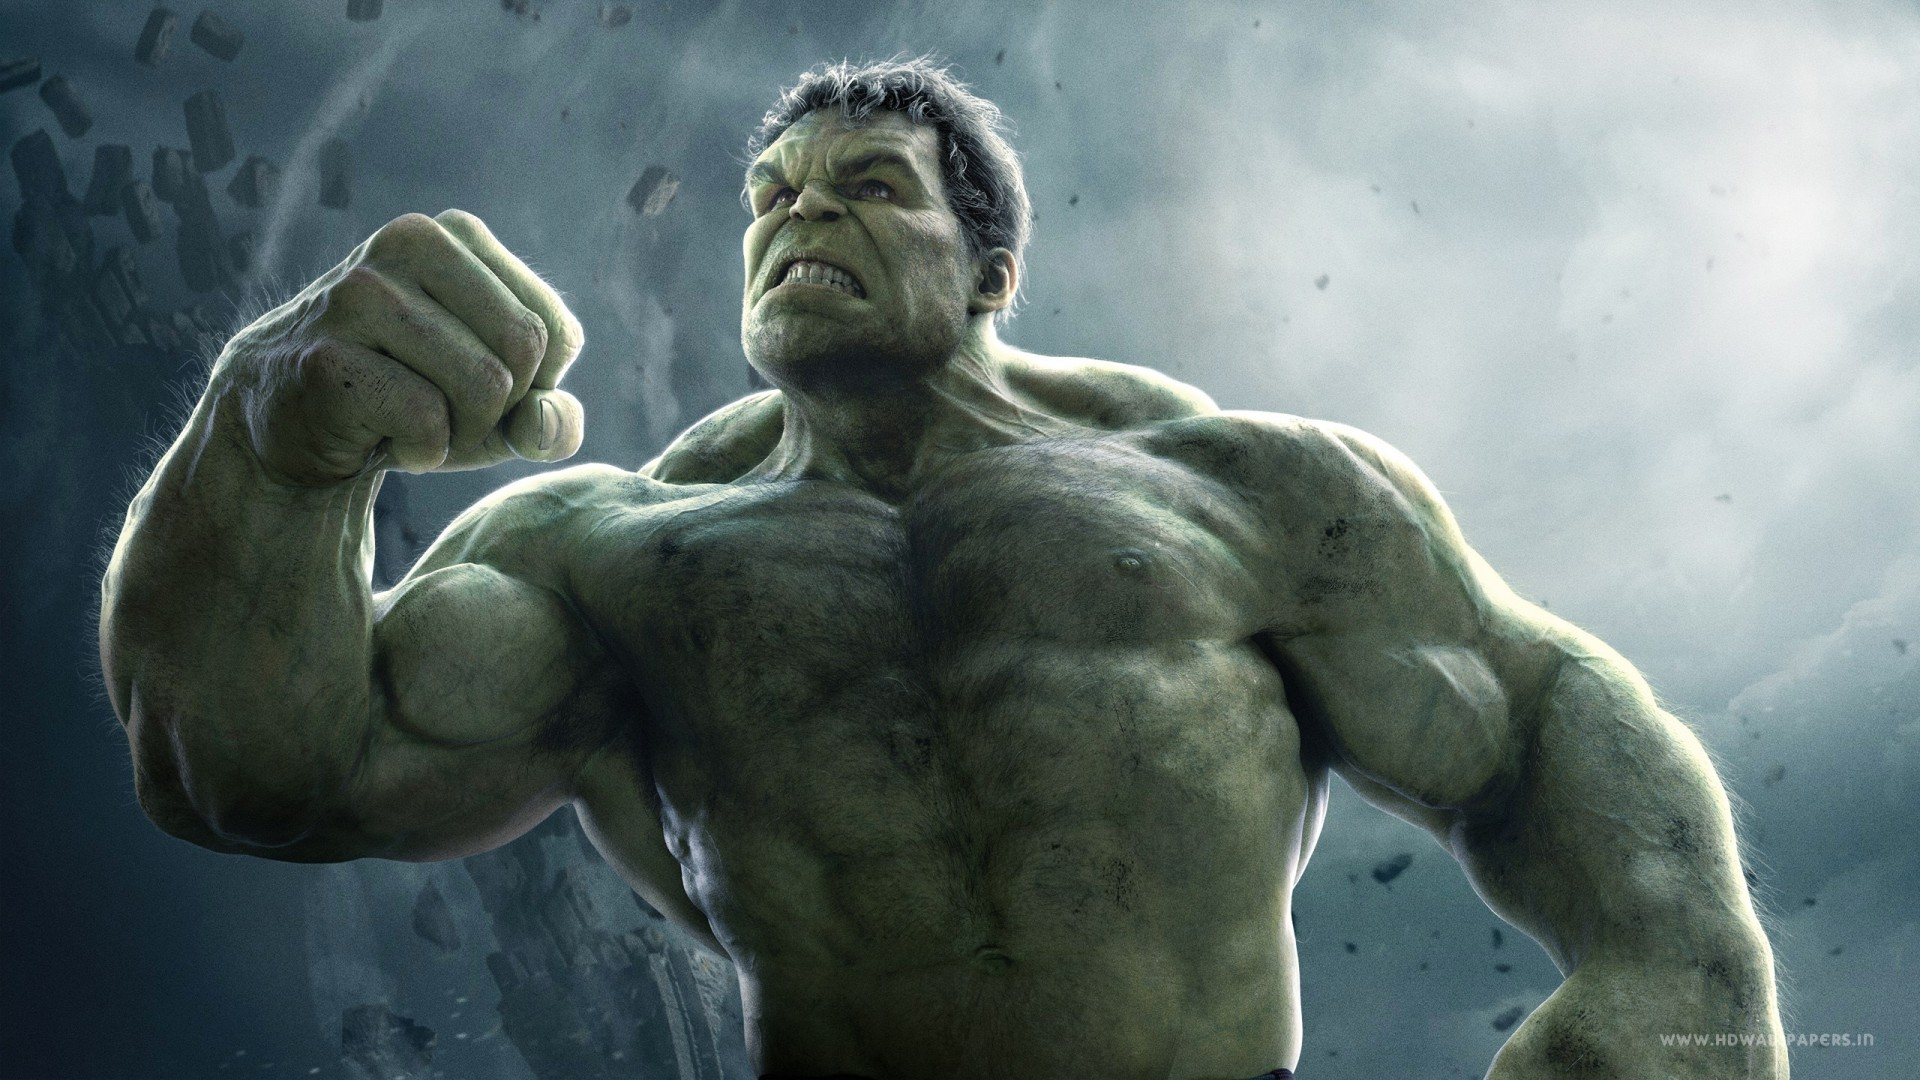 1920x1080 Avengers Age of Ultron Hulk Wallpapers HD Wallpapers